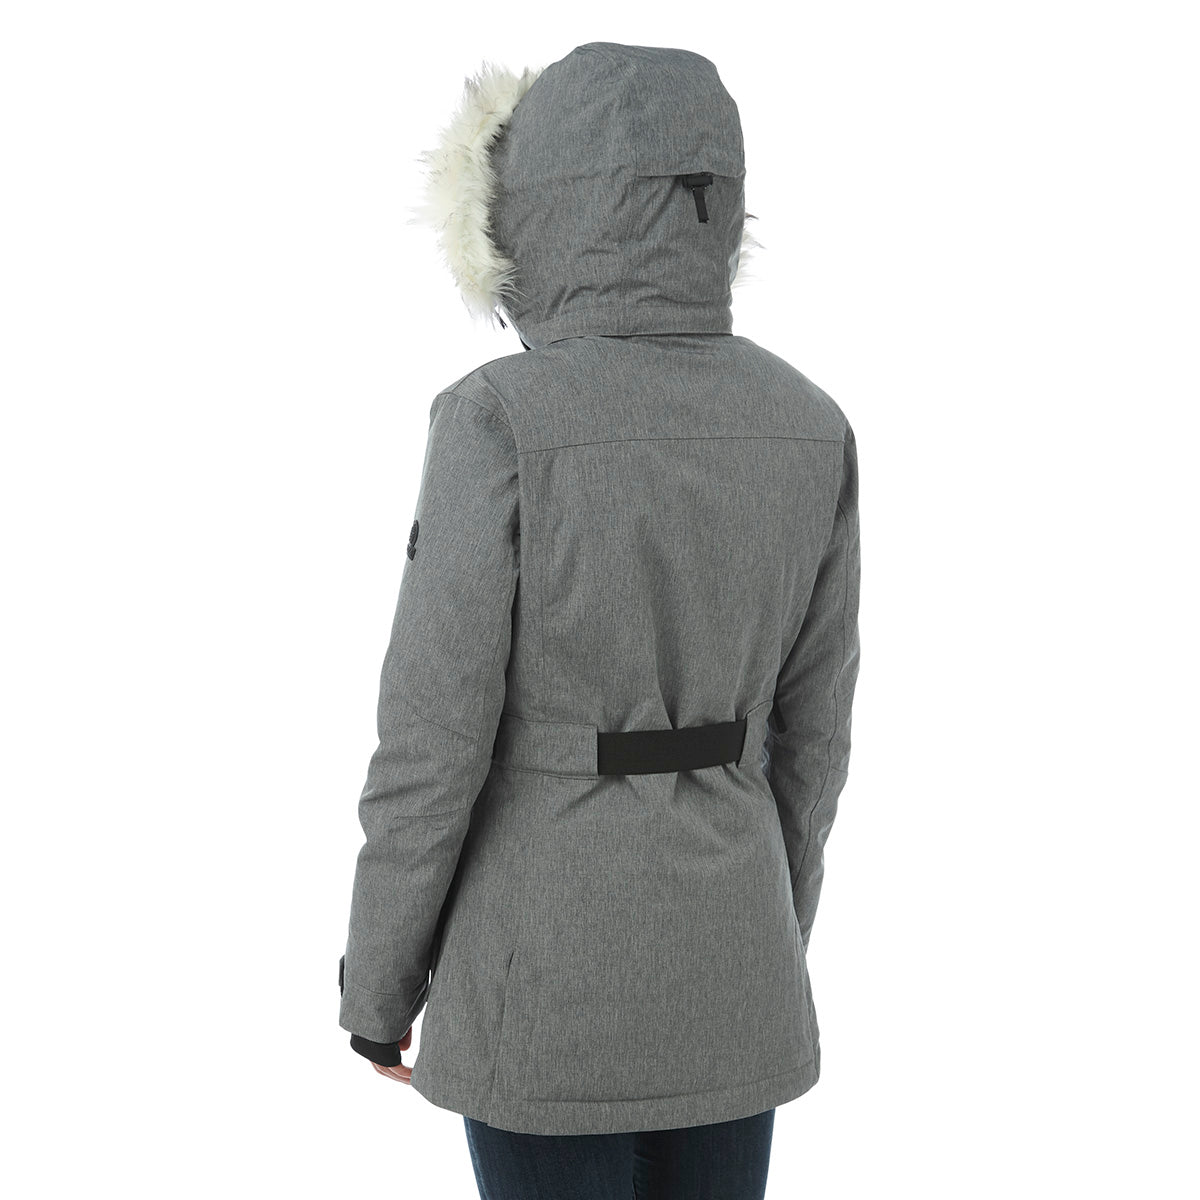 Magna Womens Insulated Ski Jacket - Grey Marl image 4